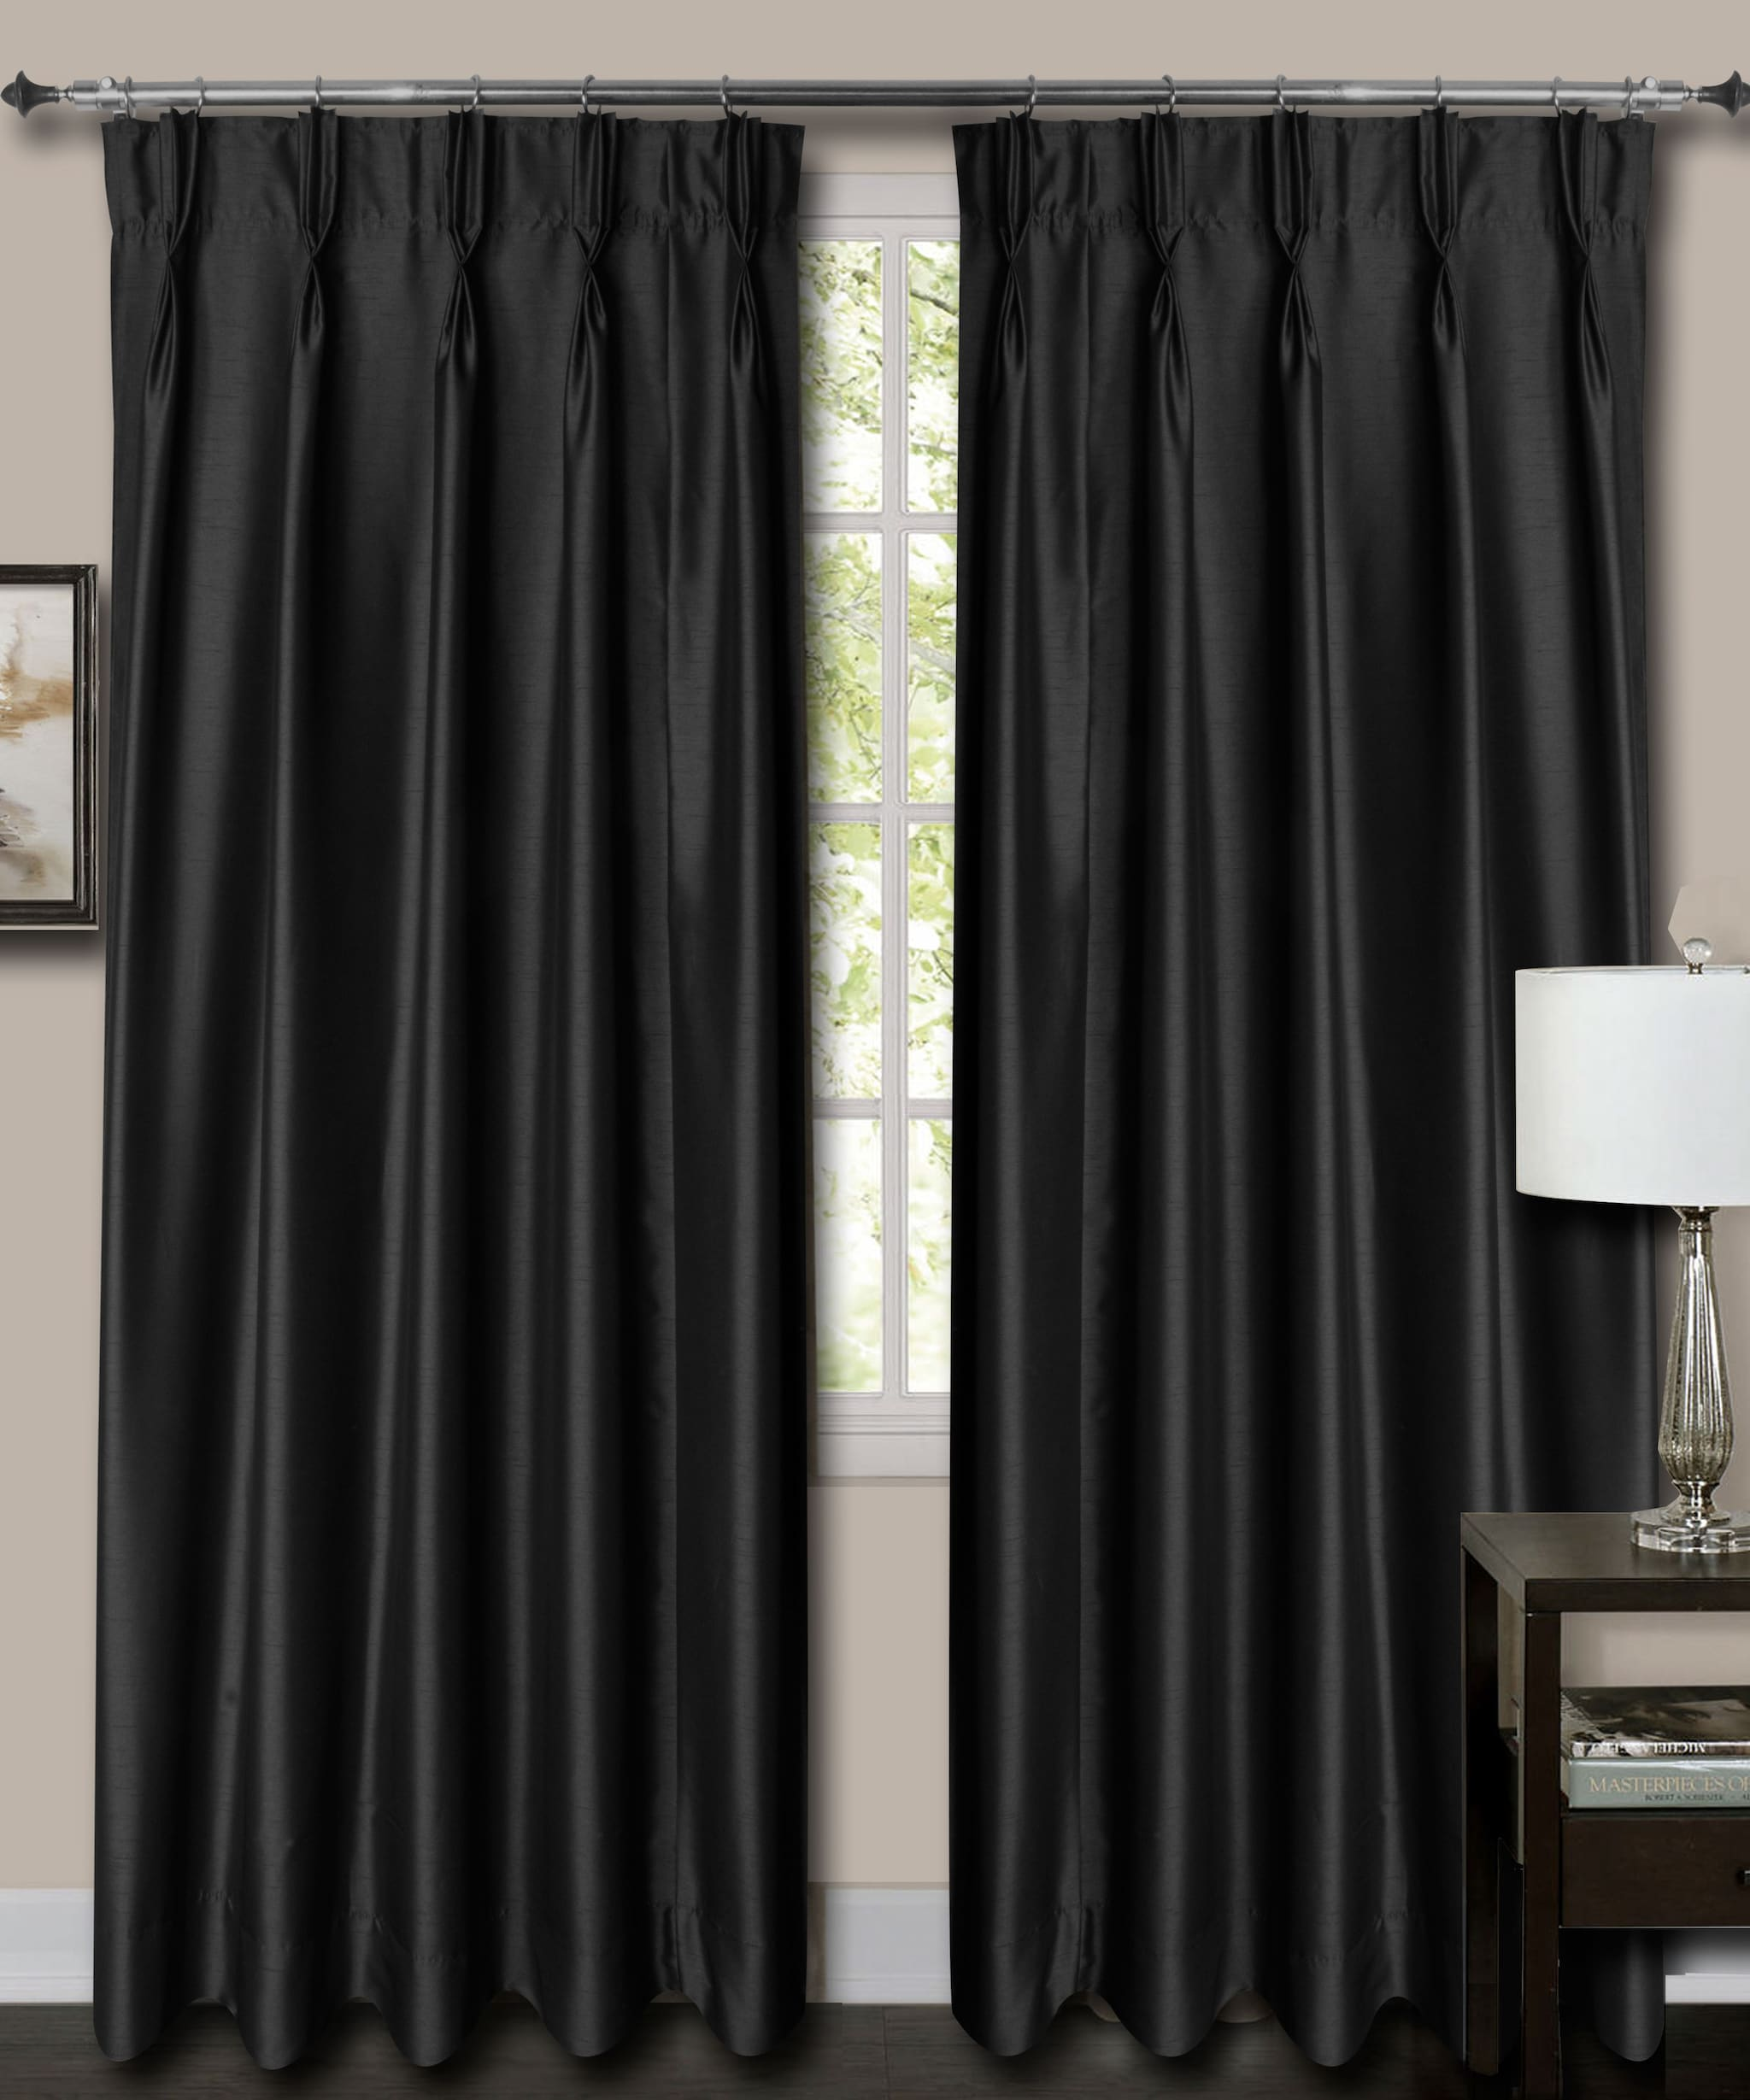 """French Pleat Top Black Faux Silk Dupioni Curtains. (24"""" Wide,7 Feet Long,Thick Lining)"""